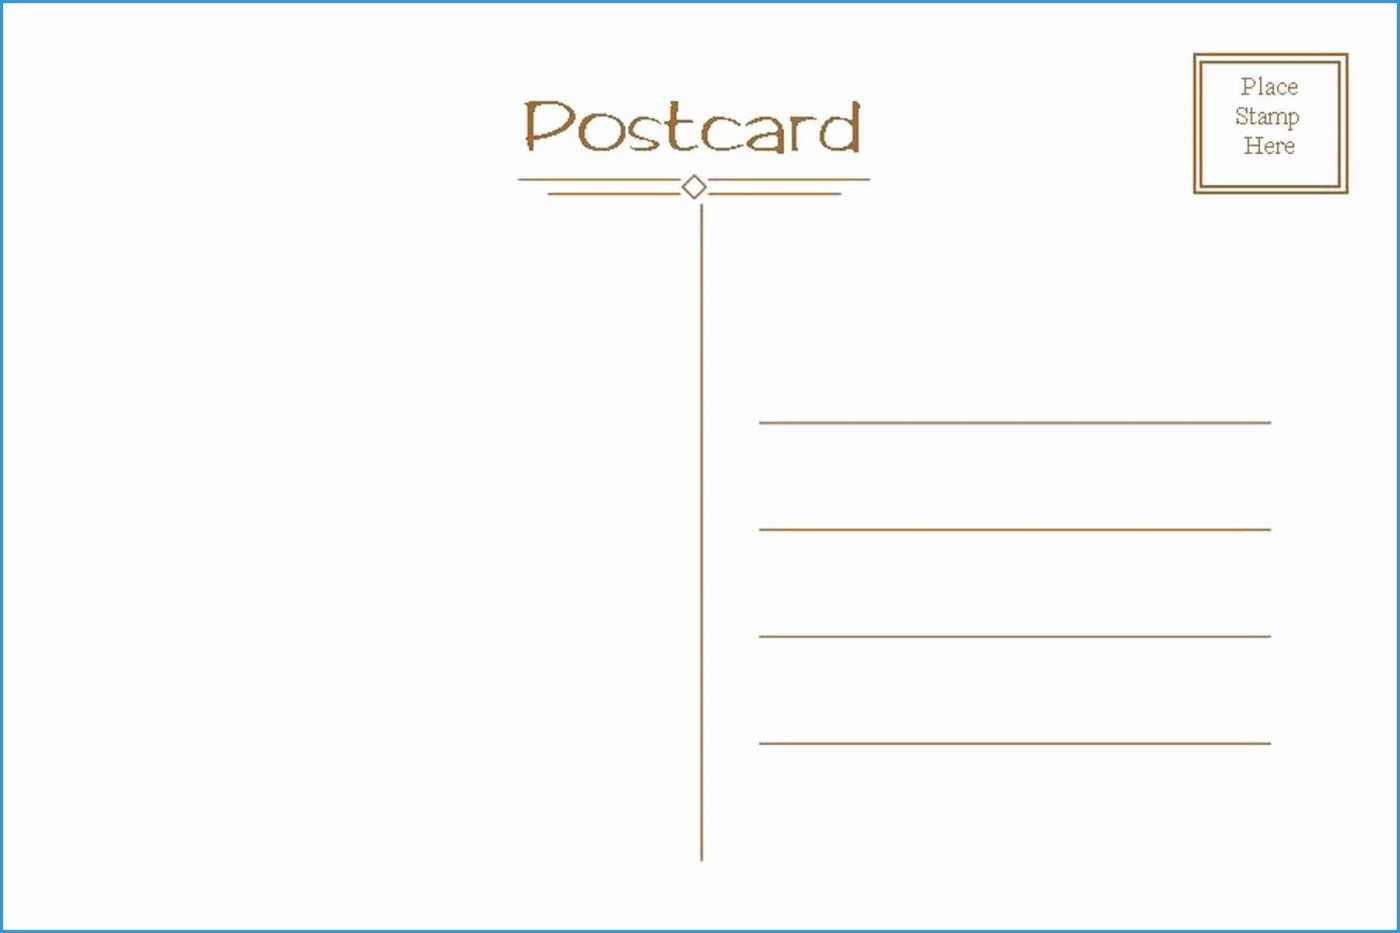 006 Exceptional Postcard Layout For Microsoft Word Highest Quality  Busines Template1400